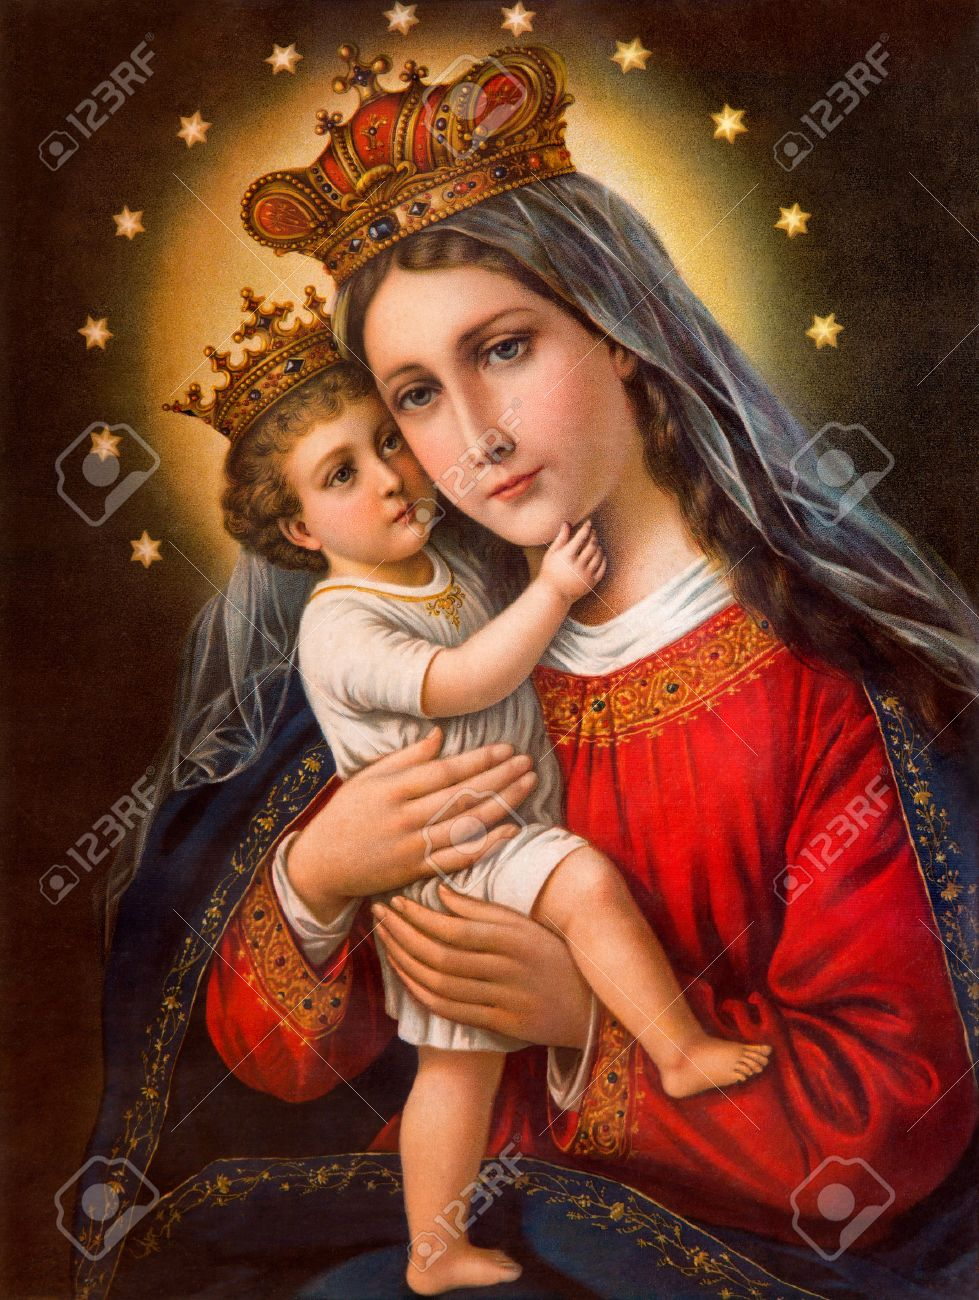 SEBECHLEBY, SLOVAKIA - JANUARY 2, 2015:  Typical catholic image of Madonna with the child printed in Germany from the end of 19. cent. originally by unknown painter. Stock Photo - 35493550